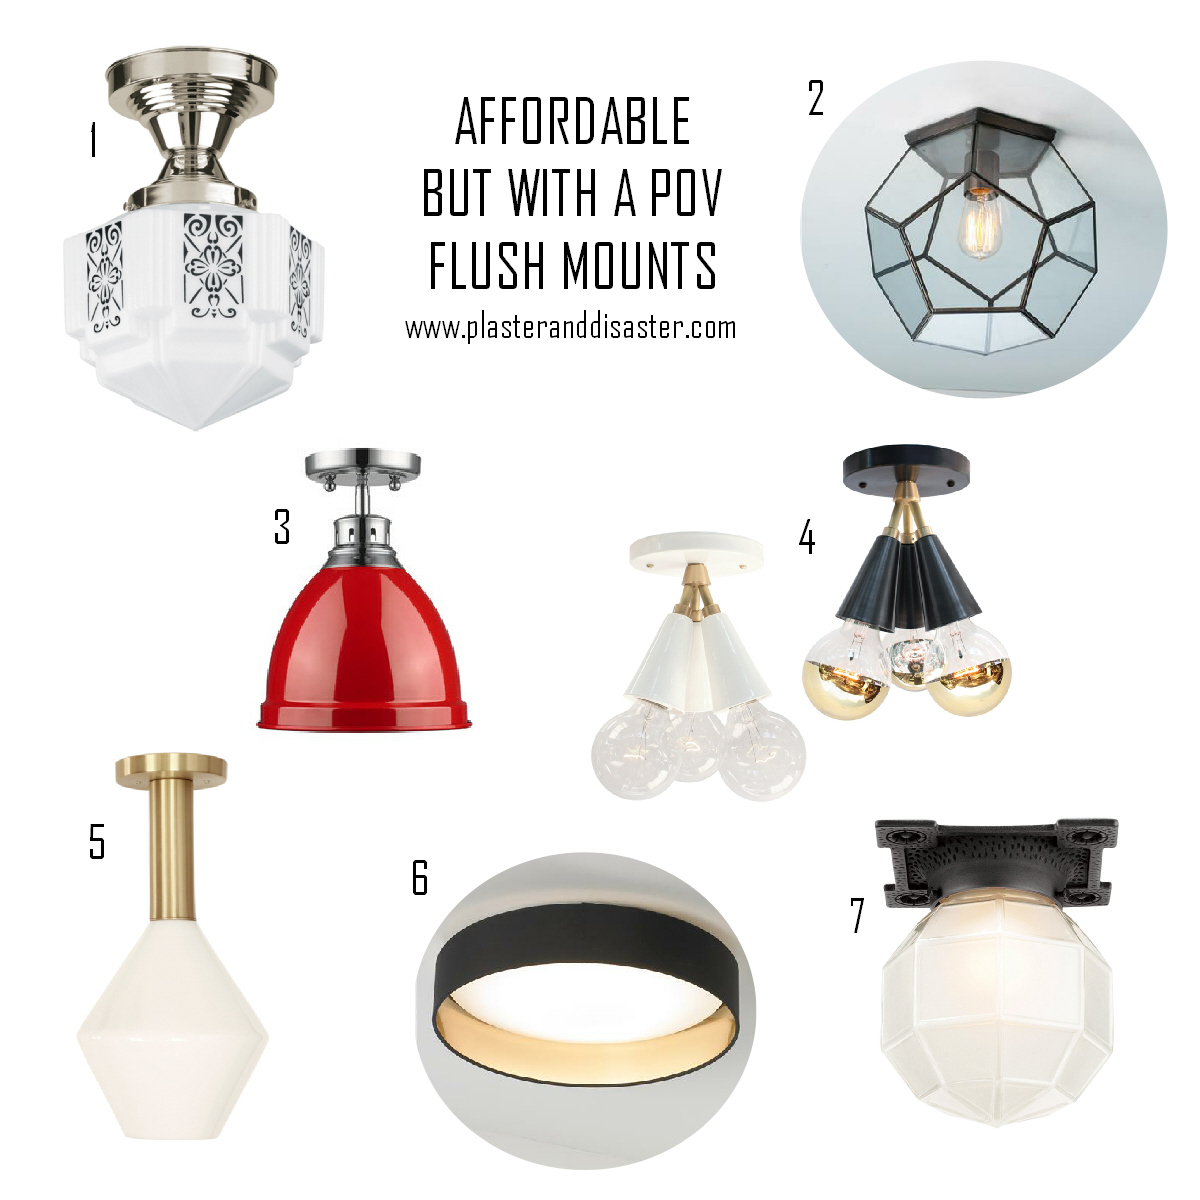 Affordable but with a POV - Flush Mount Roundup - Plaster & Disaster